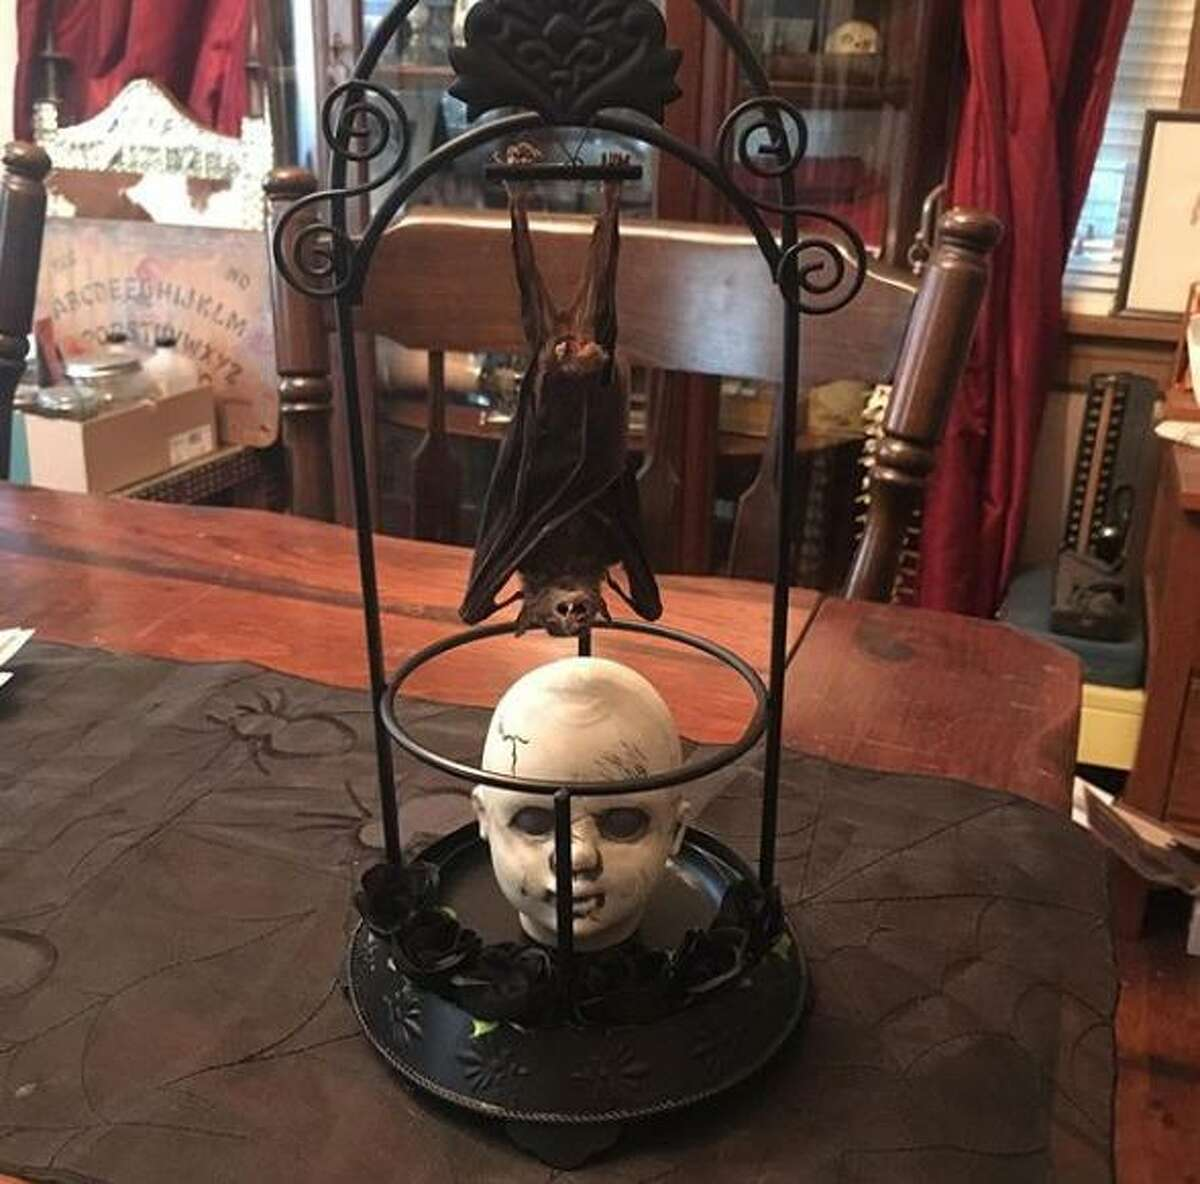 Part of Dominic Picarillo's collection of oddities.